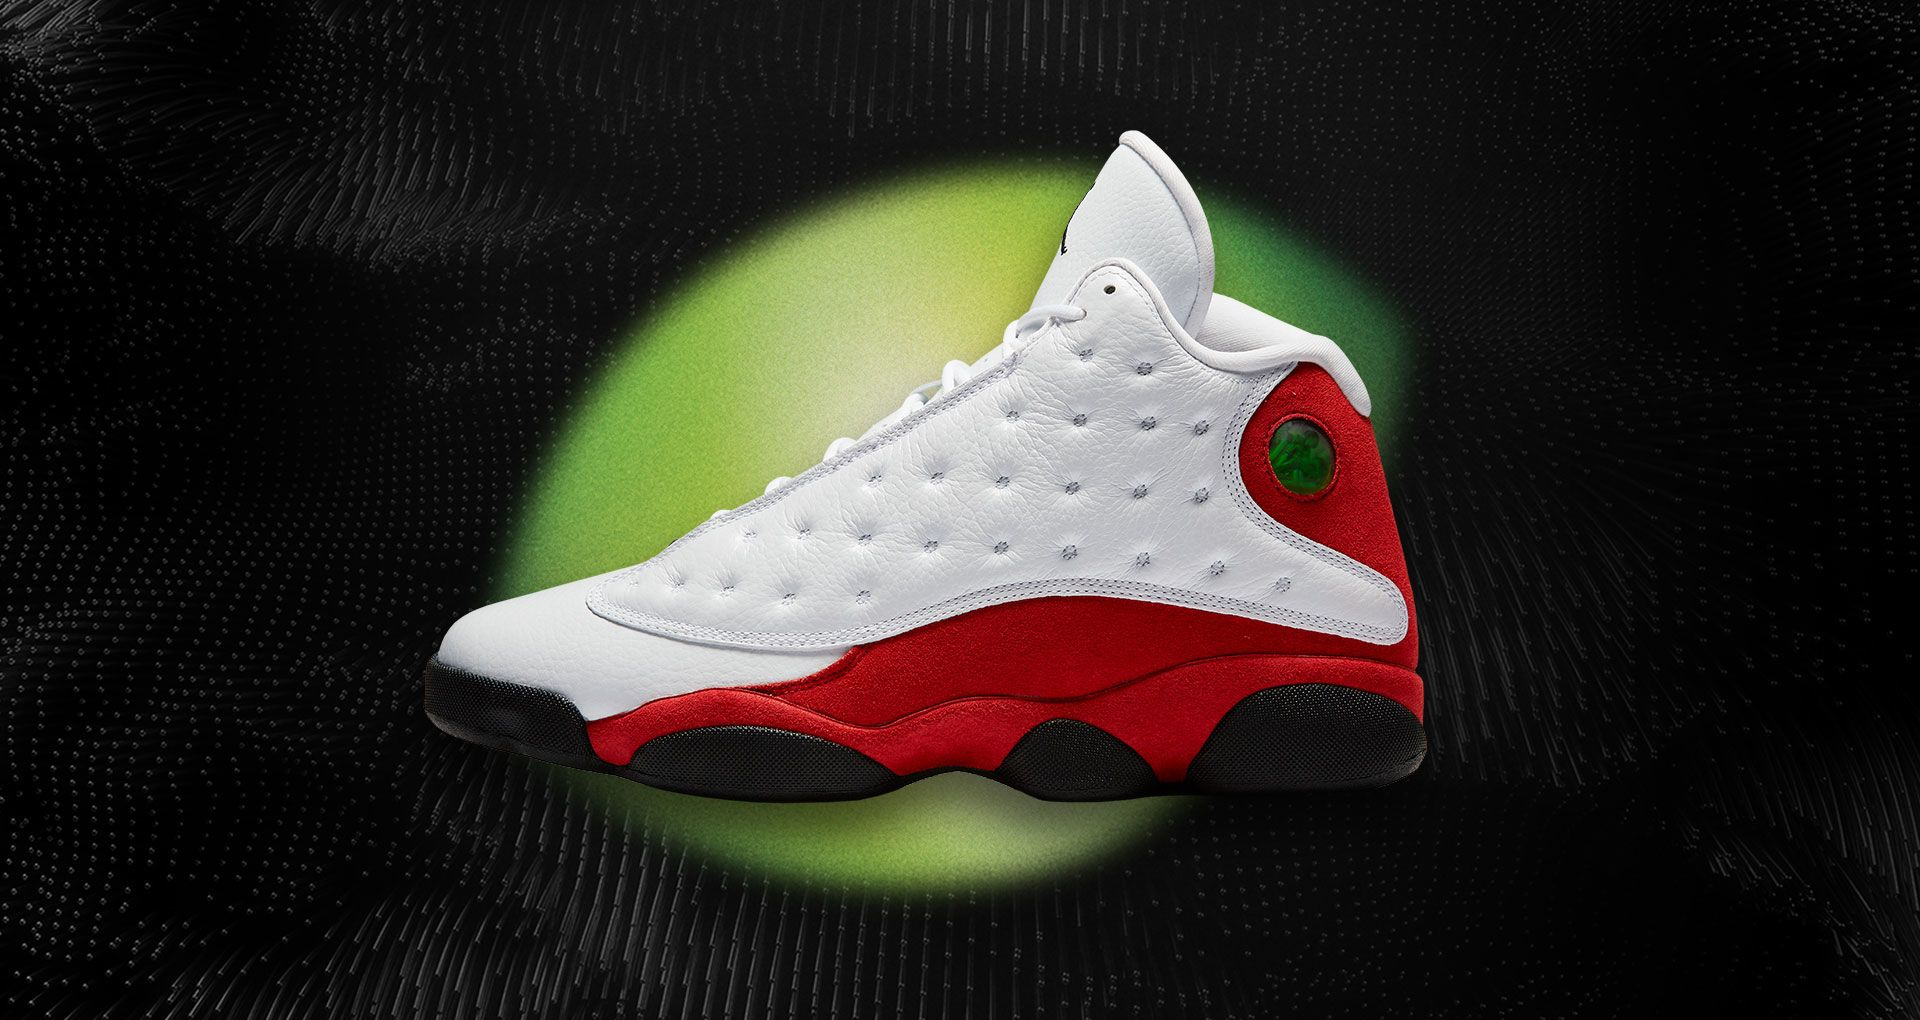 36c6d1c2ba85 Air Jordan 13 Retro OG  White   Team Red . Nike⁠+ SNKRS